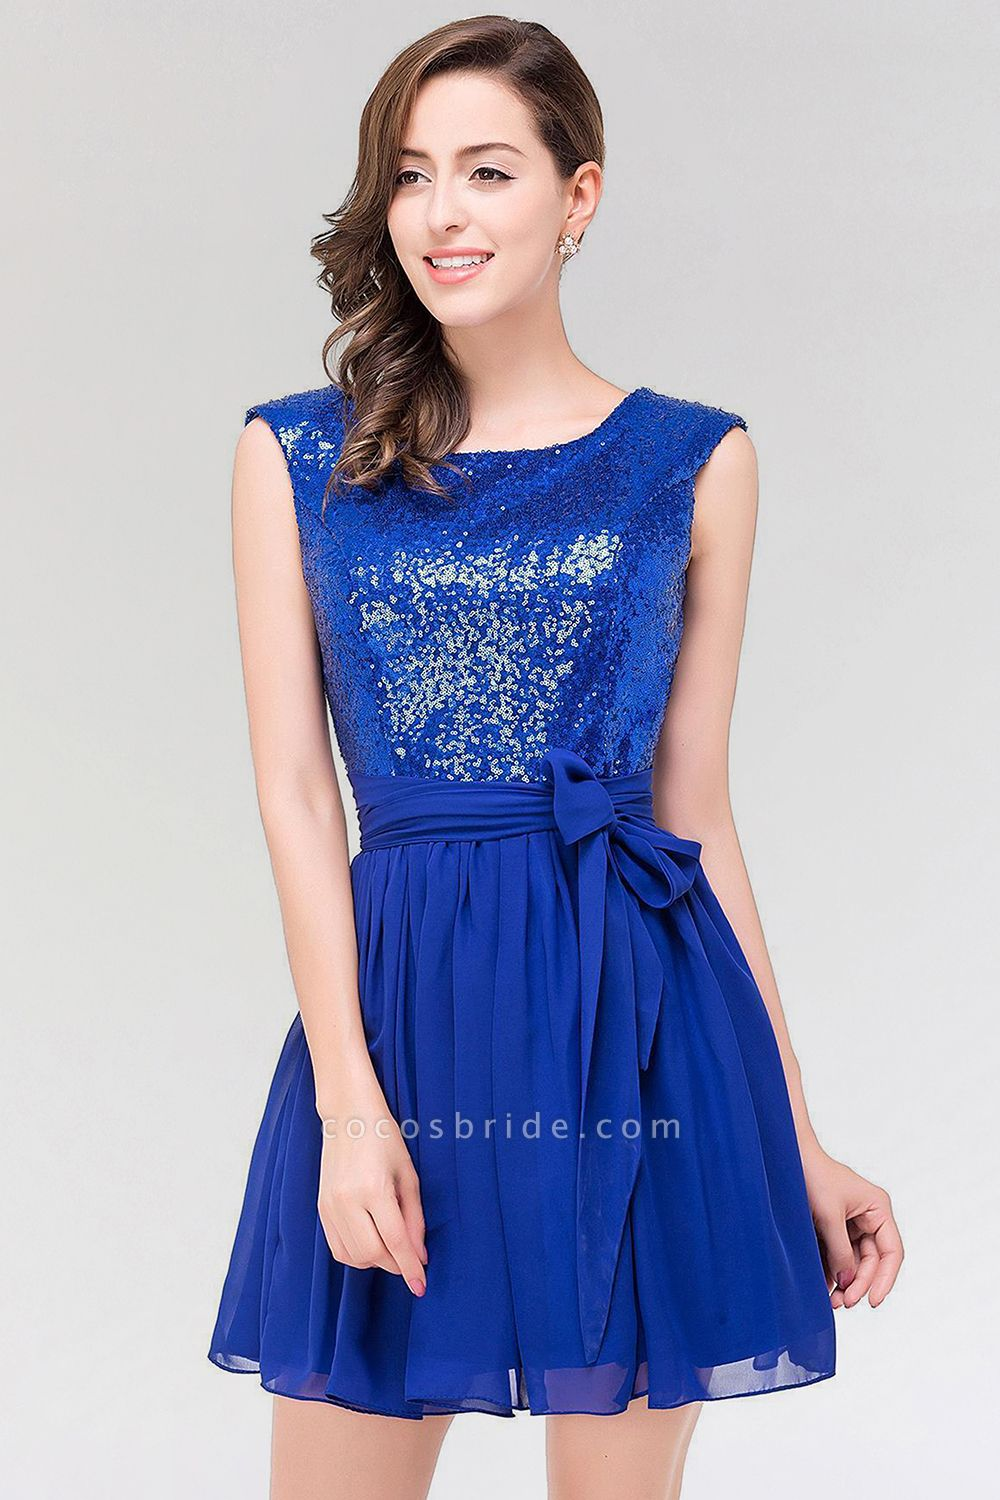 A-line Chiffon Square Sleeveless Bow Ruffles Mini Bridesmaid Dress with Sequins